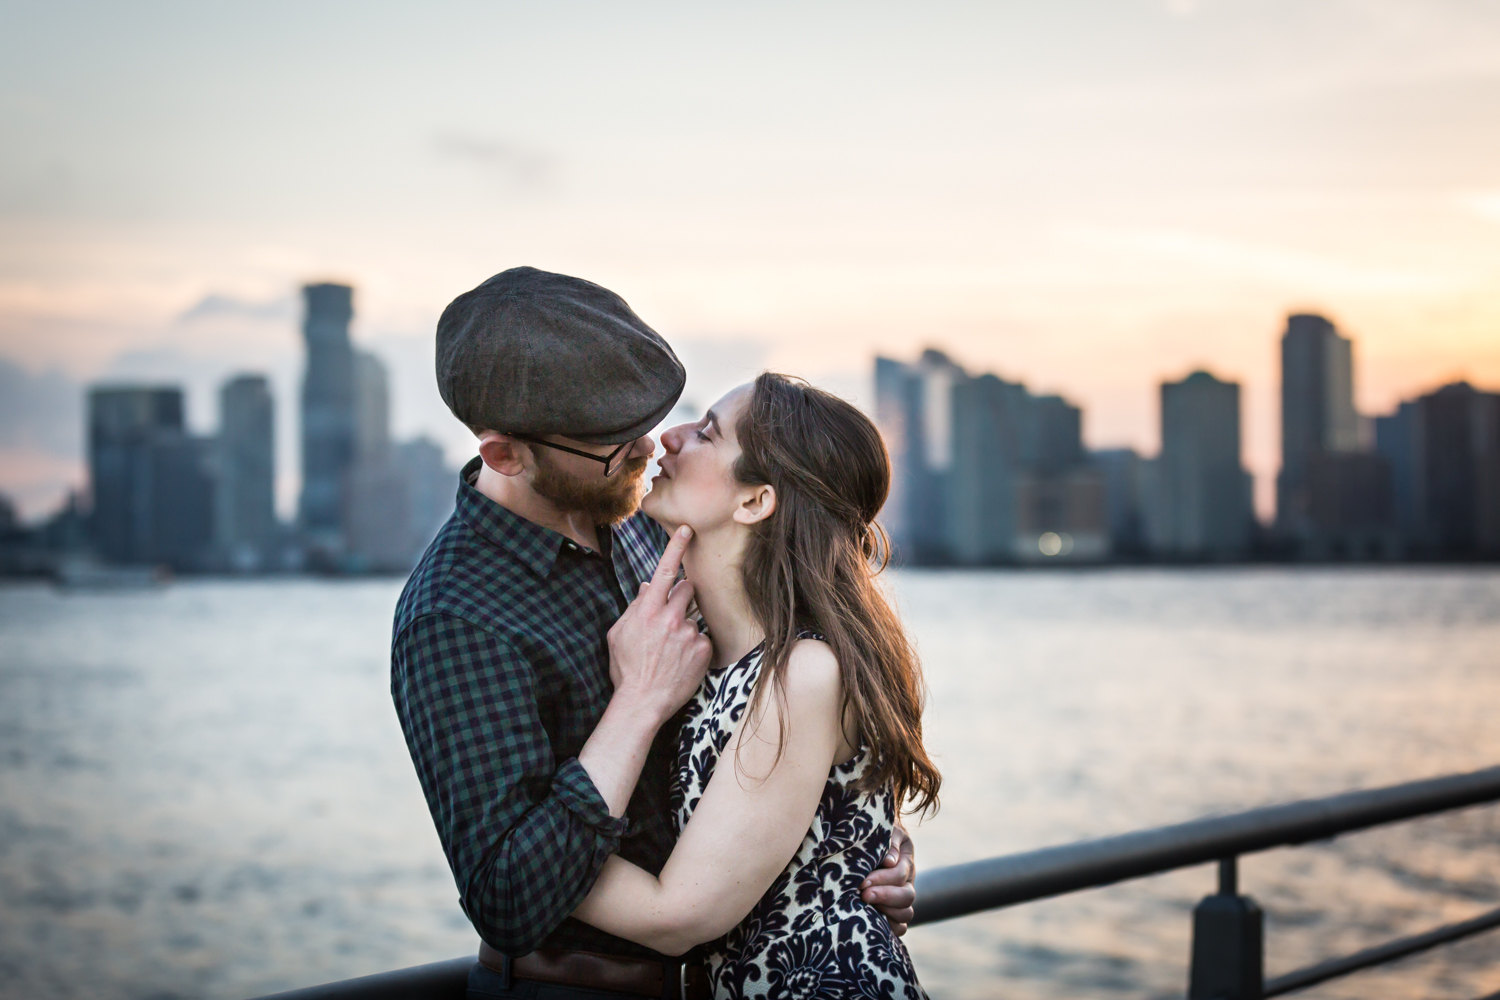 Man lifting up woman's head with his finger in front of Hudson River